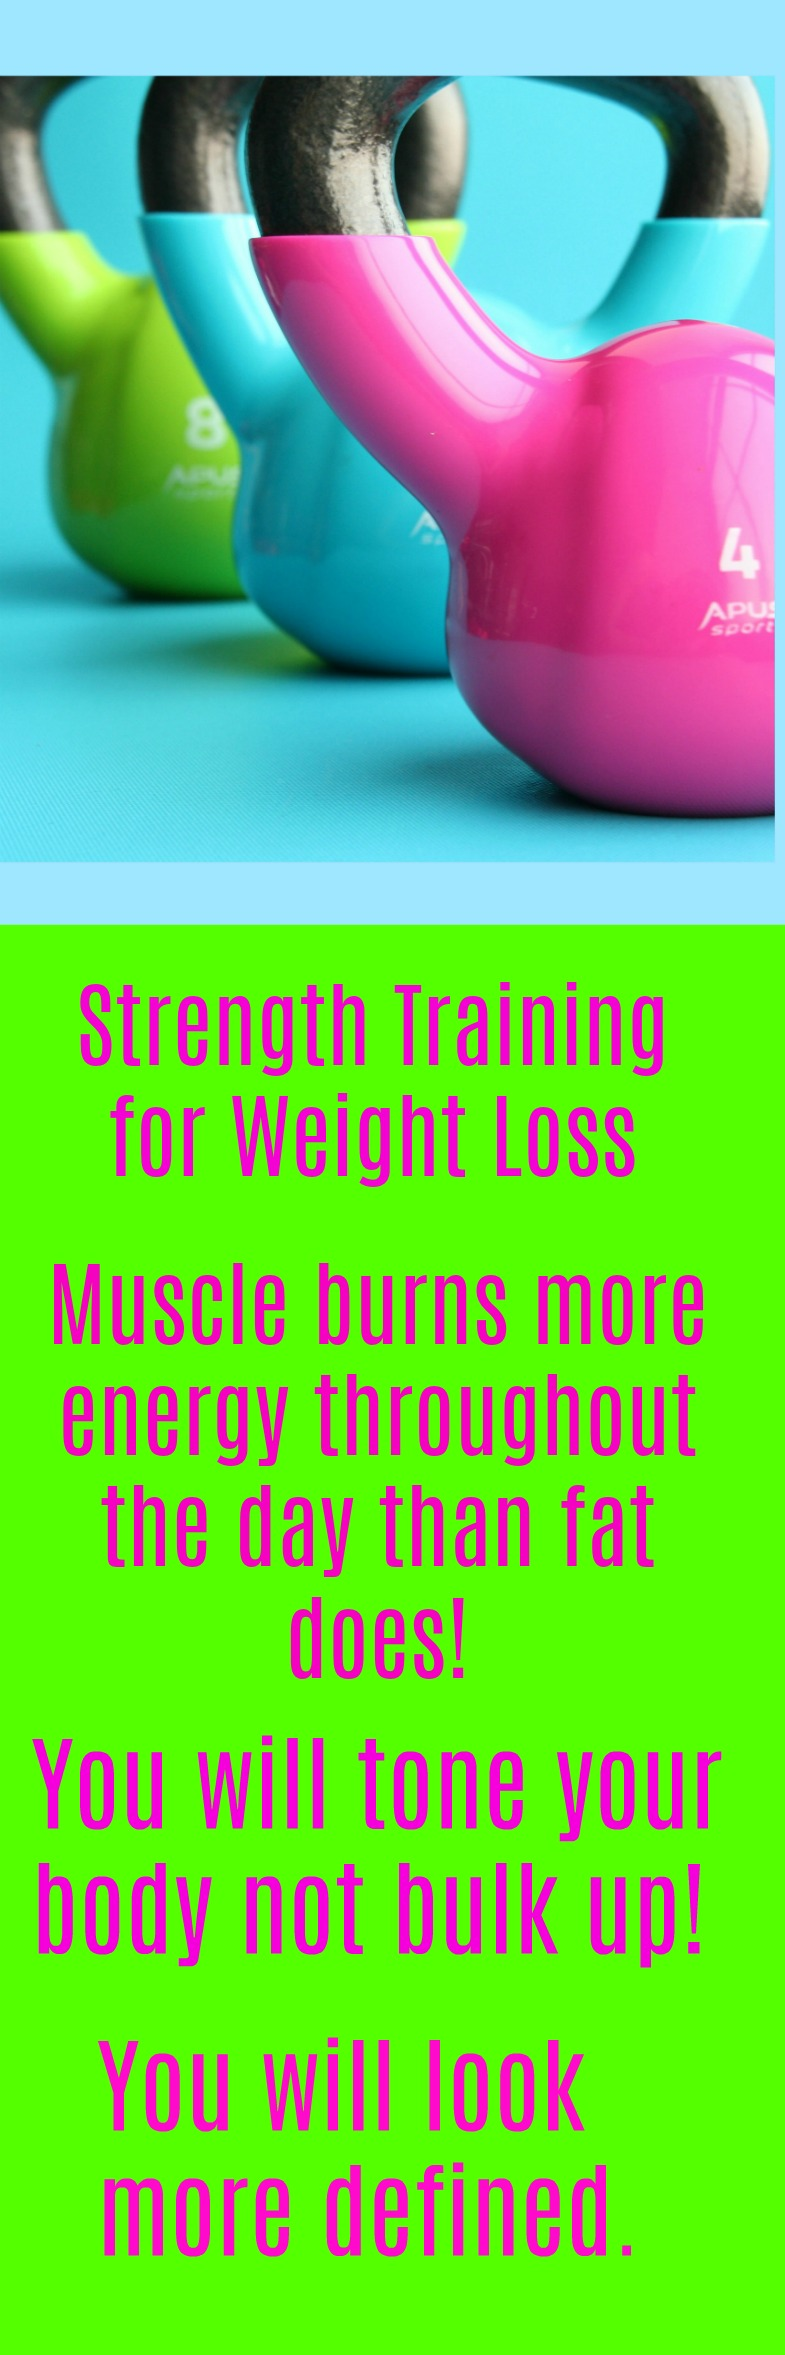 You need to know the benefits of strength training for weight loss that you should incorporate into your daily routine.Strength training is what's really going to give yourweight-loss goalsthat extra boost.